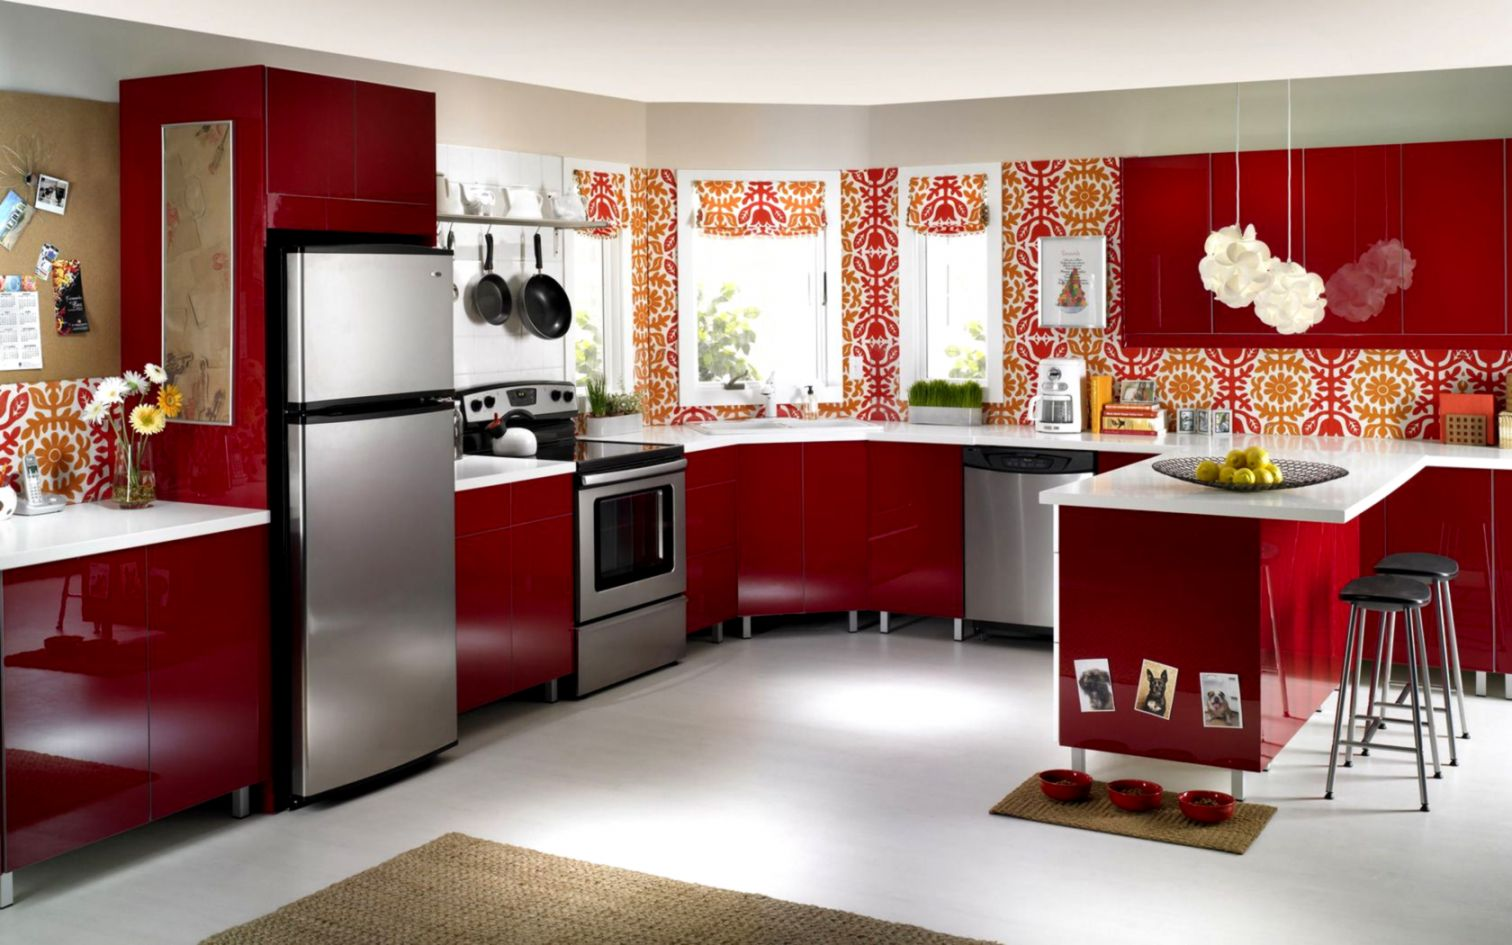 Red Kitchen Furniture Wallpaper Hd Pack Wallpapers